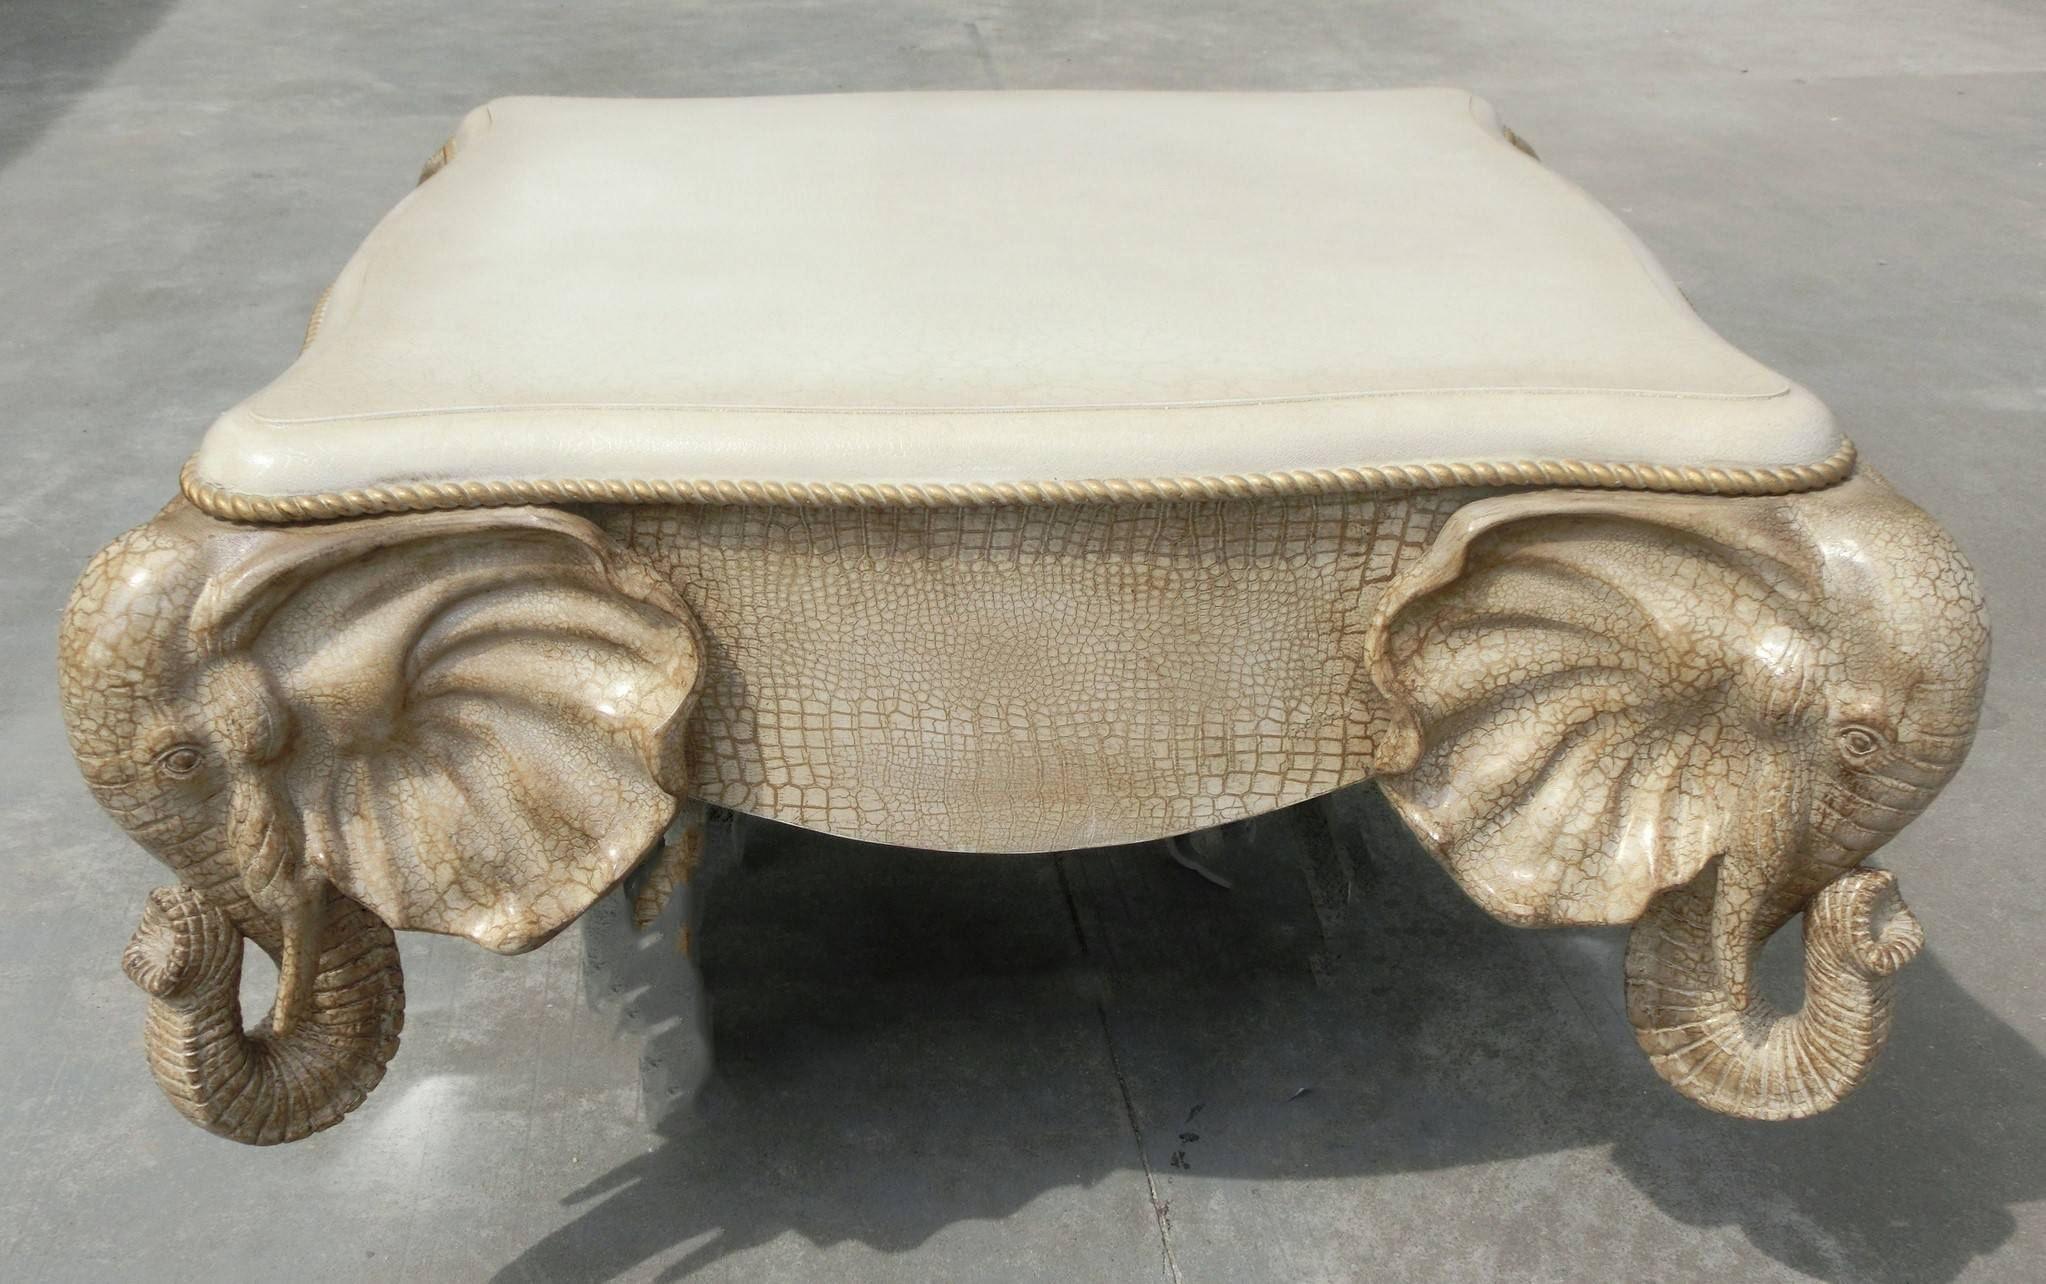 Furniture. Elephant Coffee Table Ideas: Brown Varnished Wooden intended for Elephant Coffee Tables (Image 21 of 30)